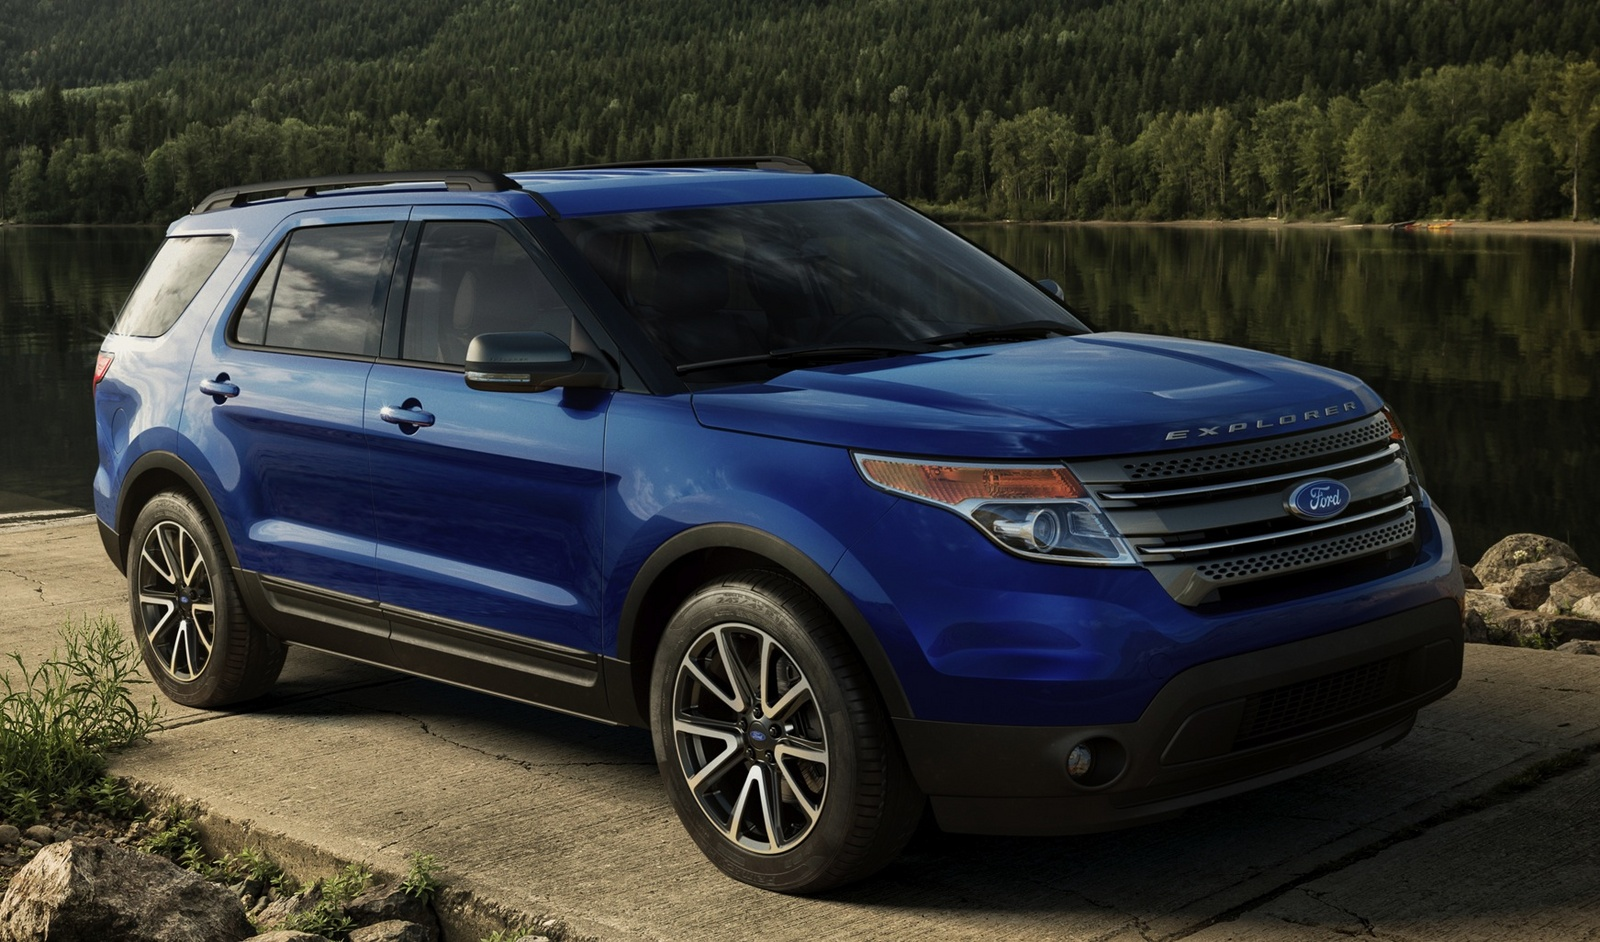 Home / Research / Ford / Explorer / 2015